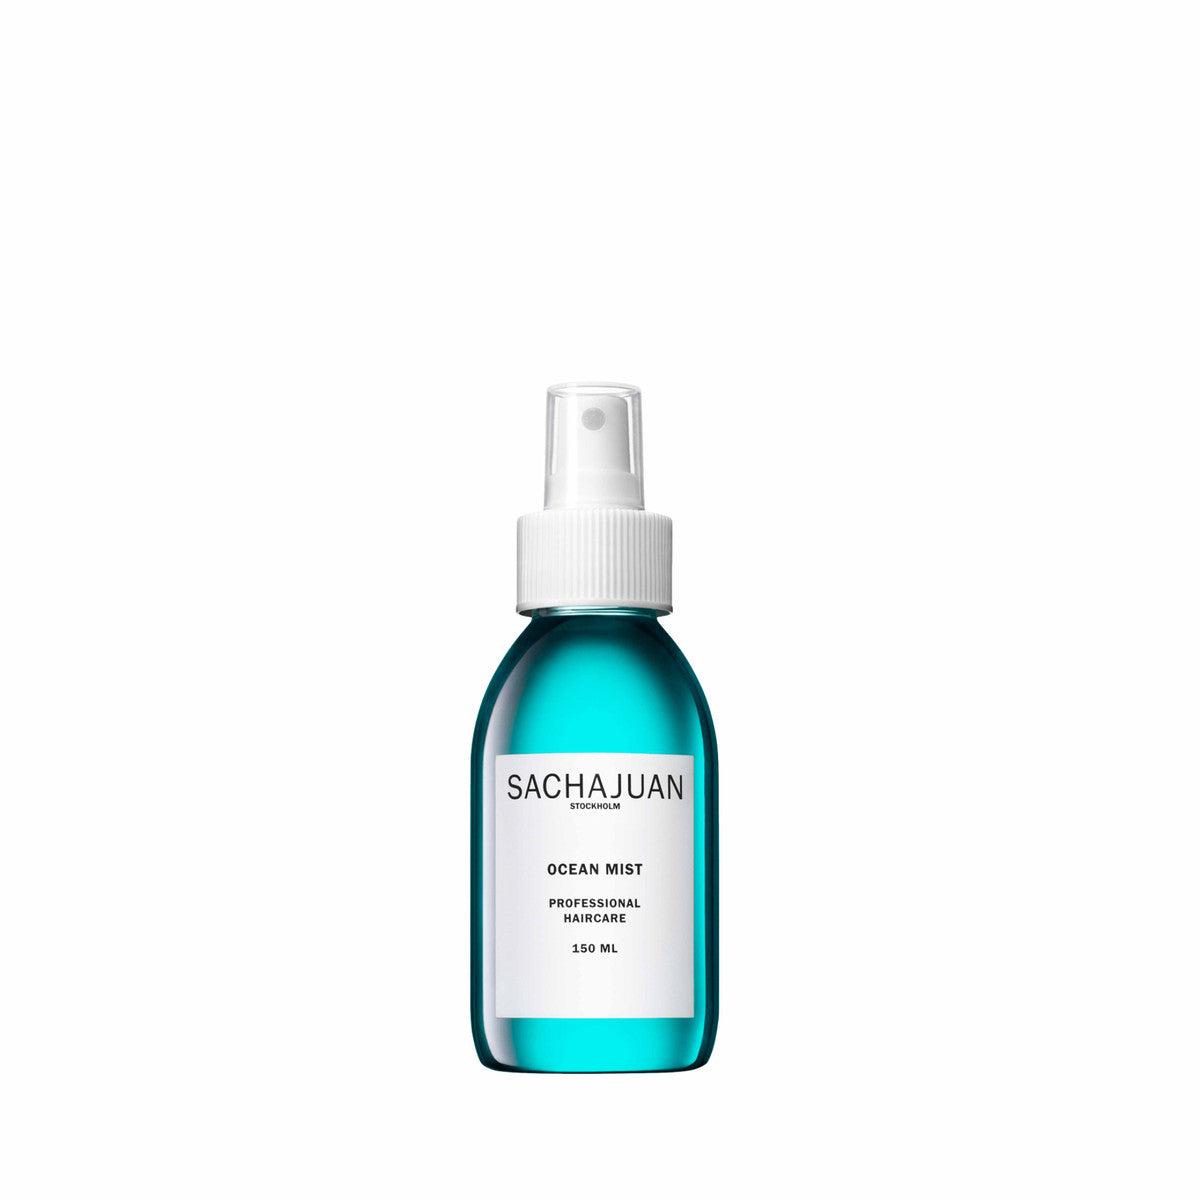 SACHAJUAN Ocean Mist 150 ml - Brazilian Soul Beauty SACHAJUAN - Brazilian Soul Beauty